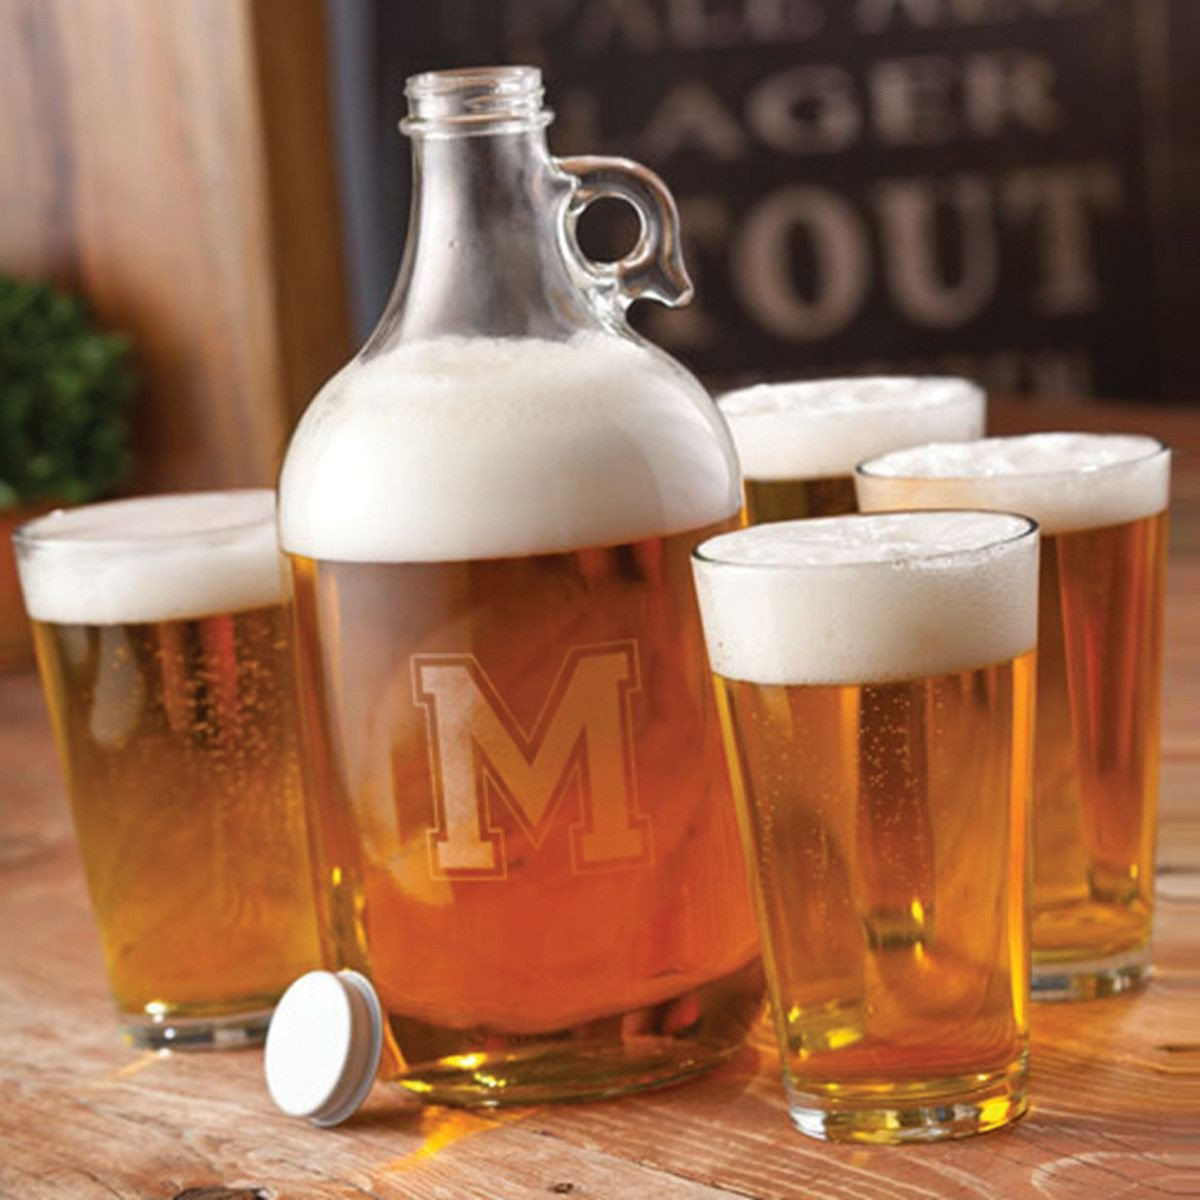 Craft-Brew-Personalized-Growler-Set-Pint-Glasses